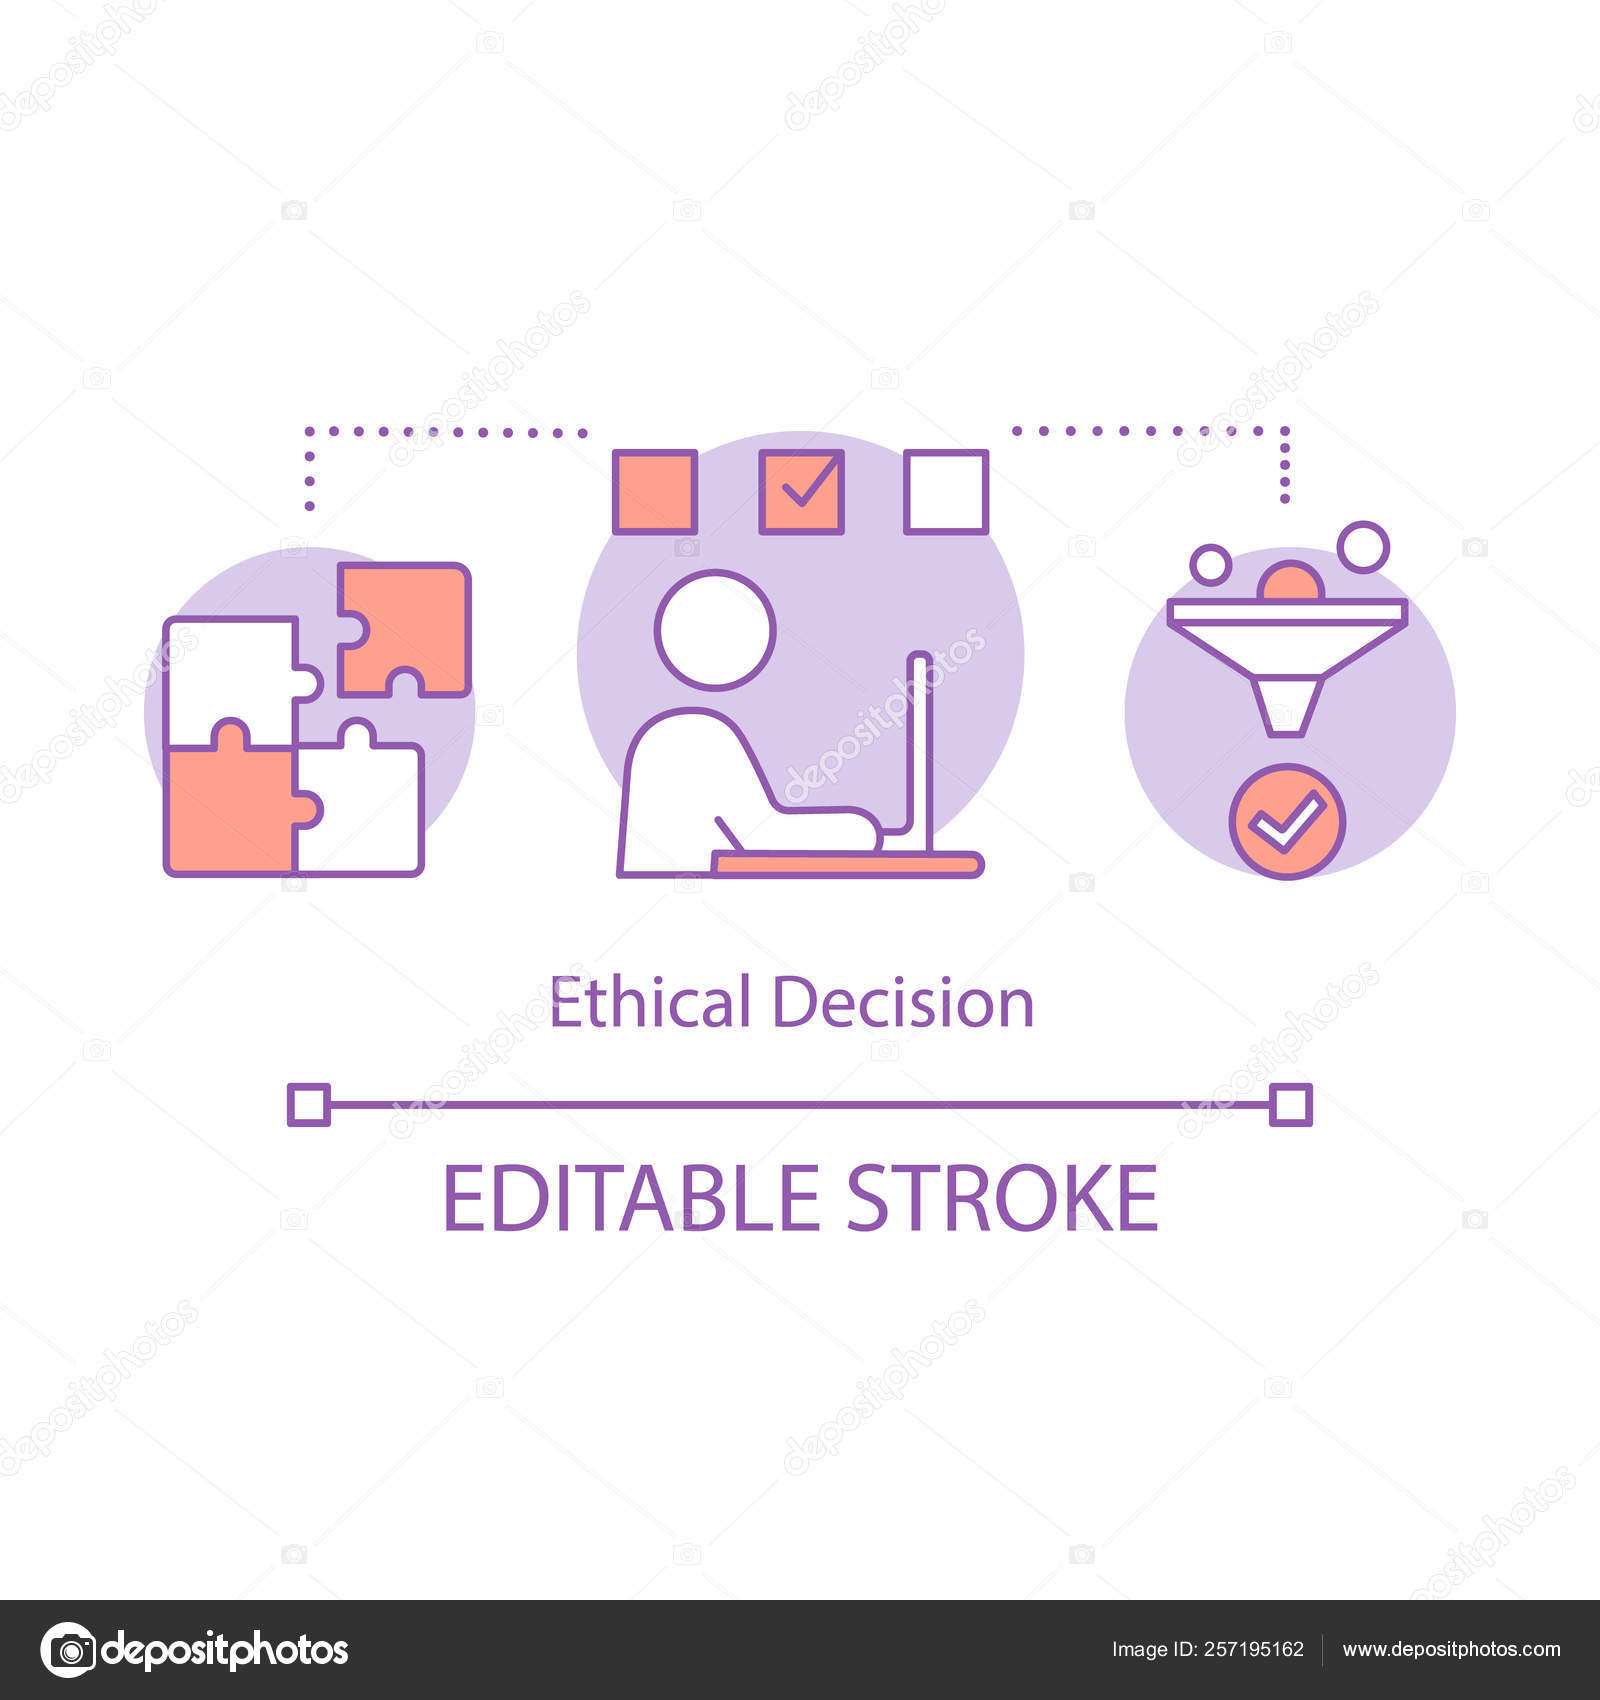 Ethical decision concept icon — Stock Vector © bsd #257195162